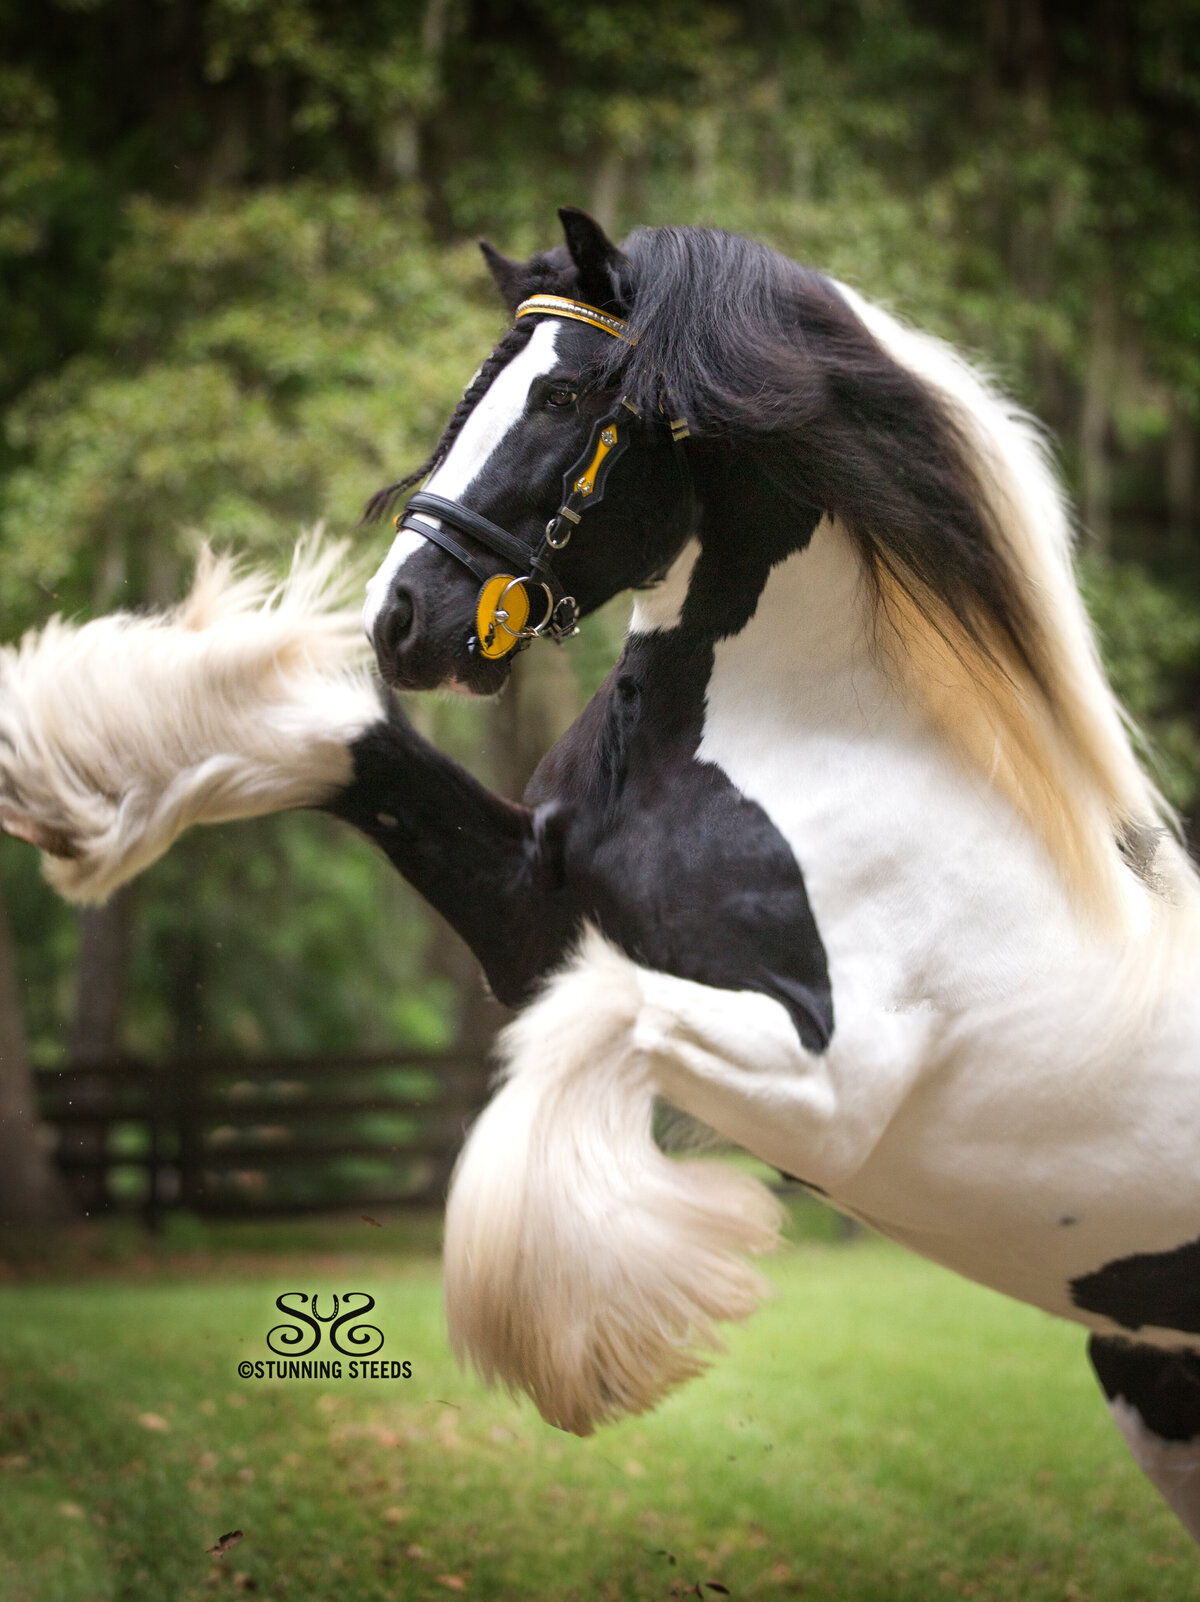 gypsy vanner pinto rearing stallion photo by Stunning Steeds